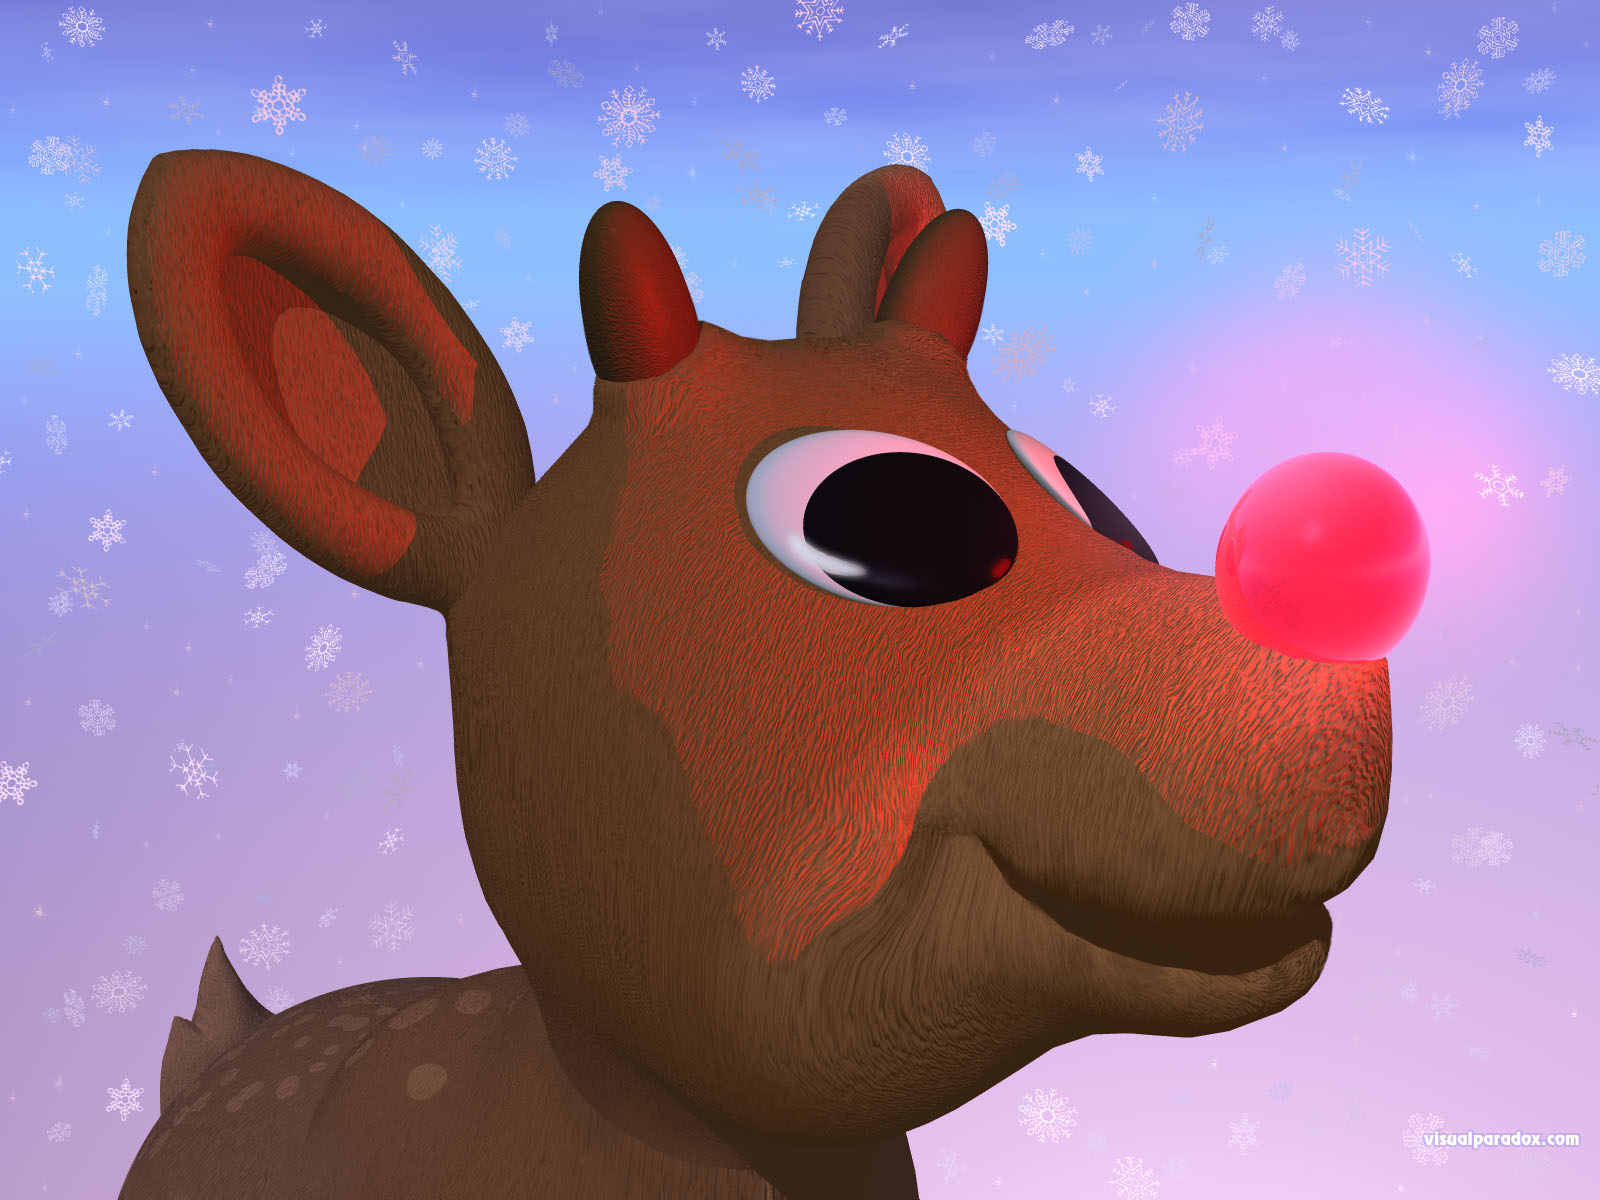 red, nosed, reindeer, christmas, xmas, snow, flakes, rudolf, holiday, nose, 3d, wallpaper